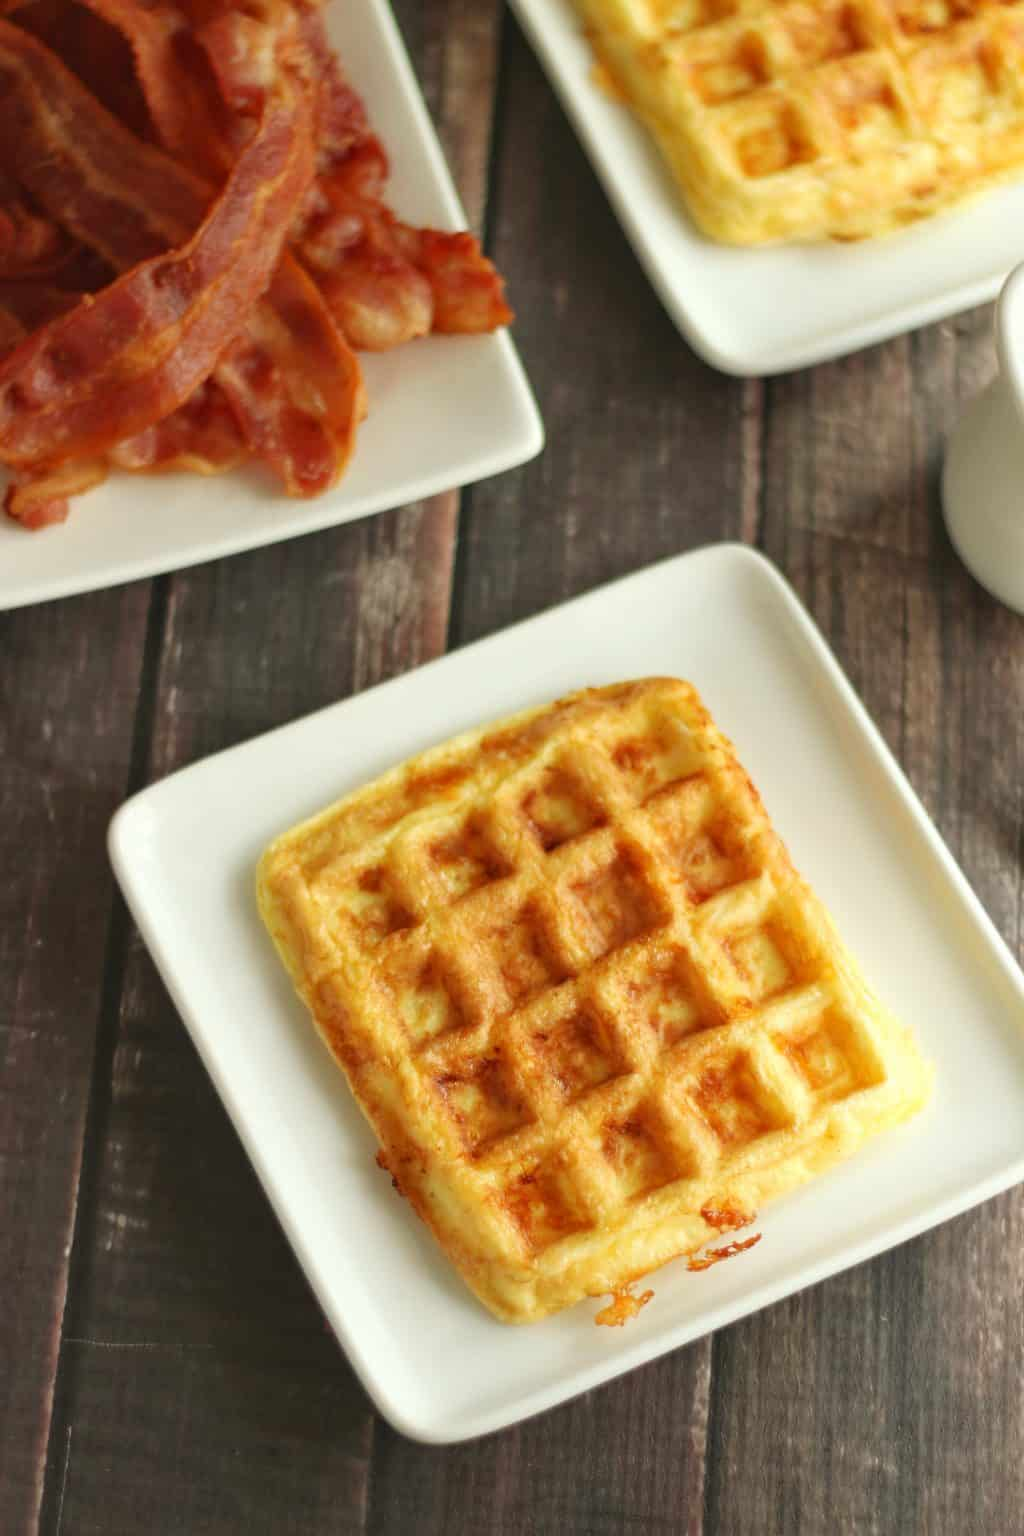 Keto Egg and Cheese Chaffle